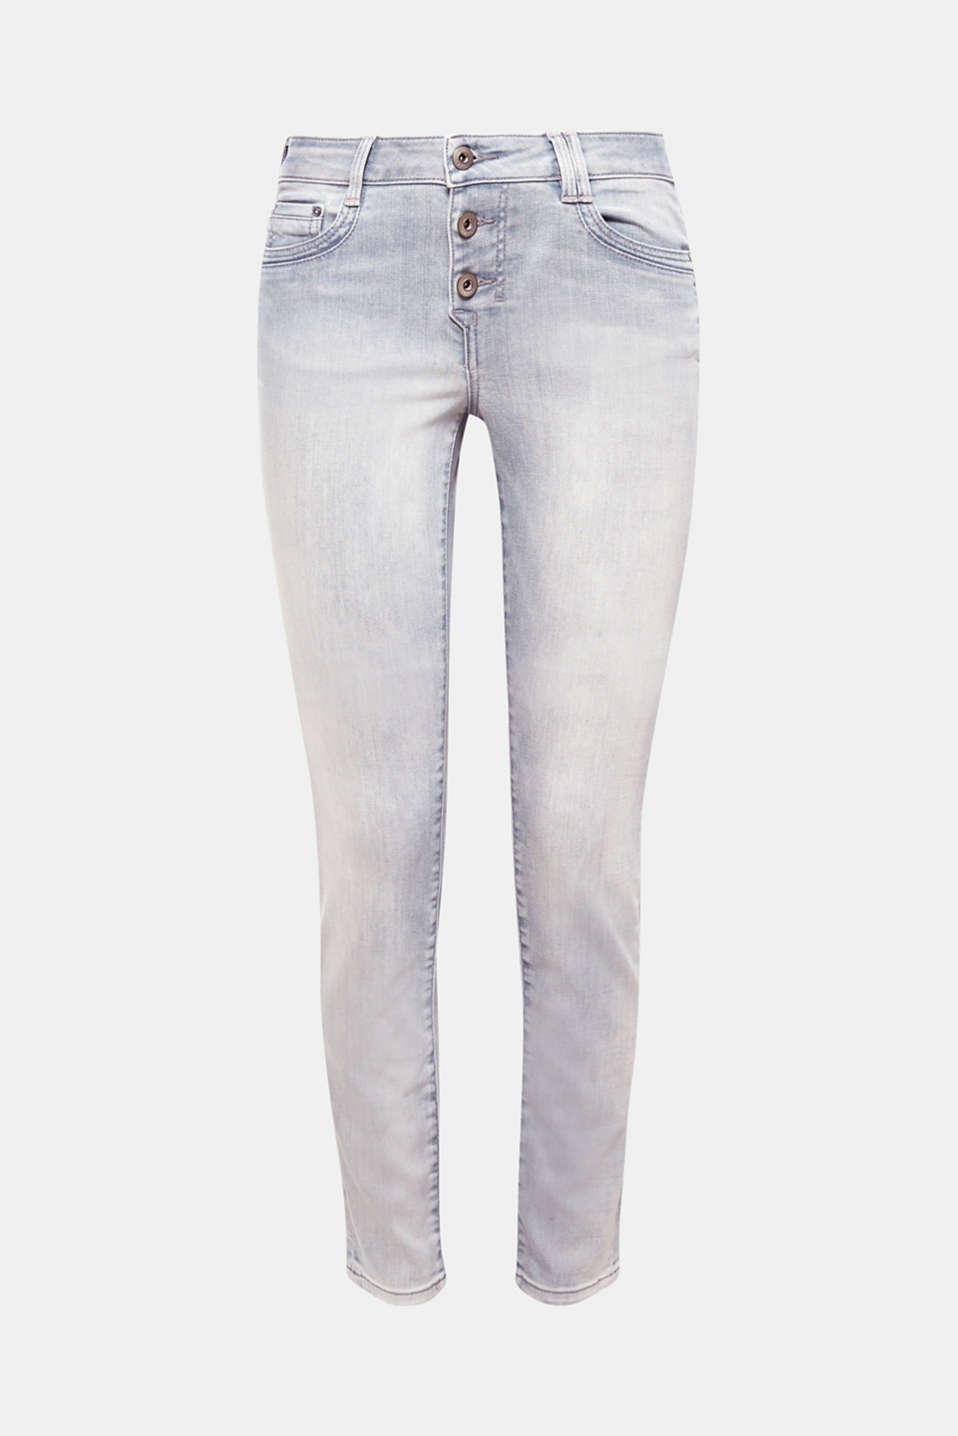 So on trend: these jeans with a button fly! Here as a five-pocket model in a pale garment wash with vintage effects.